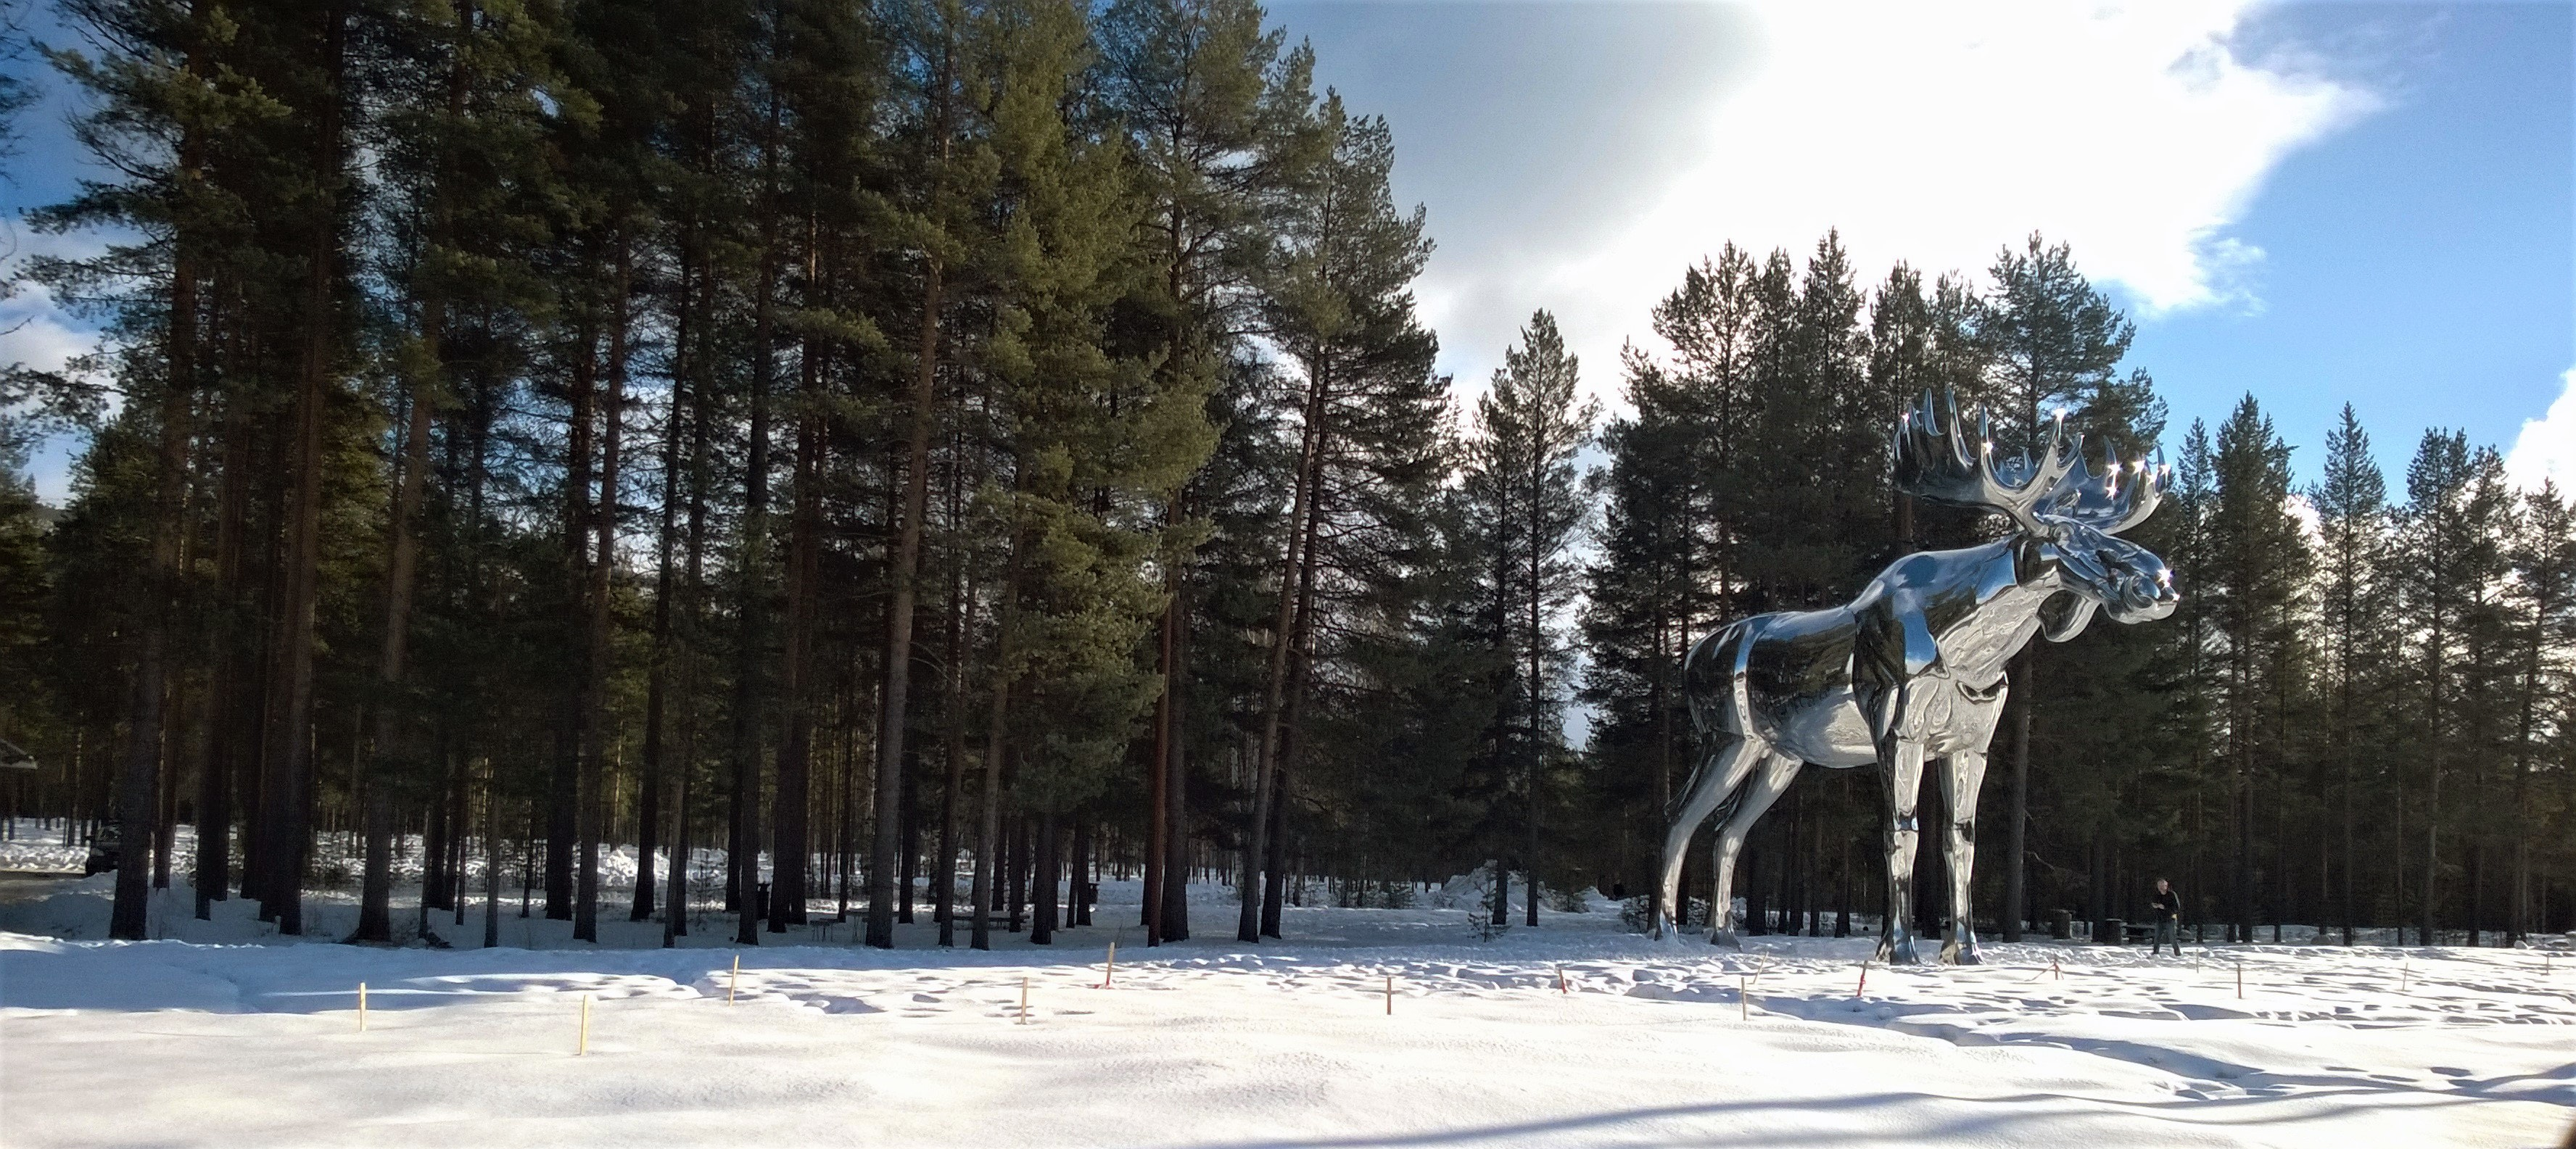 Silver Moose Statue Near Tree, Branches, Outdoors, Winter landscape, Winter, HQ Photo